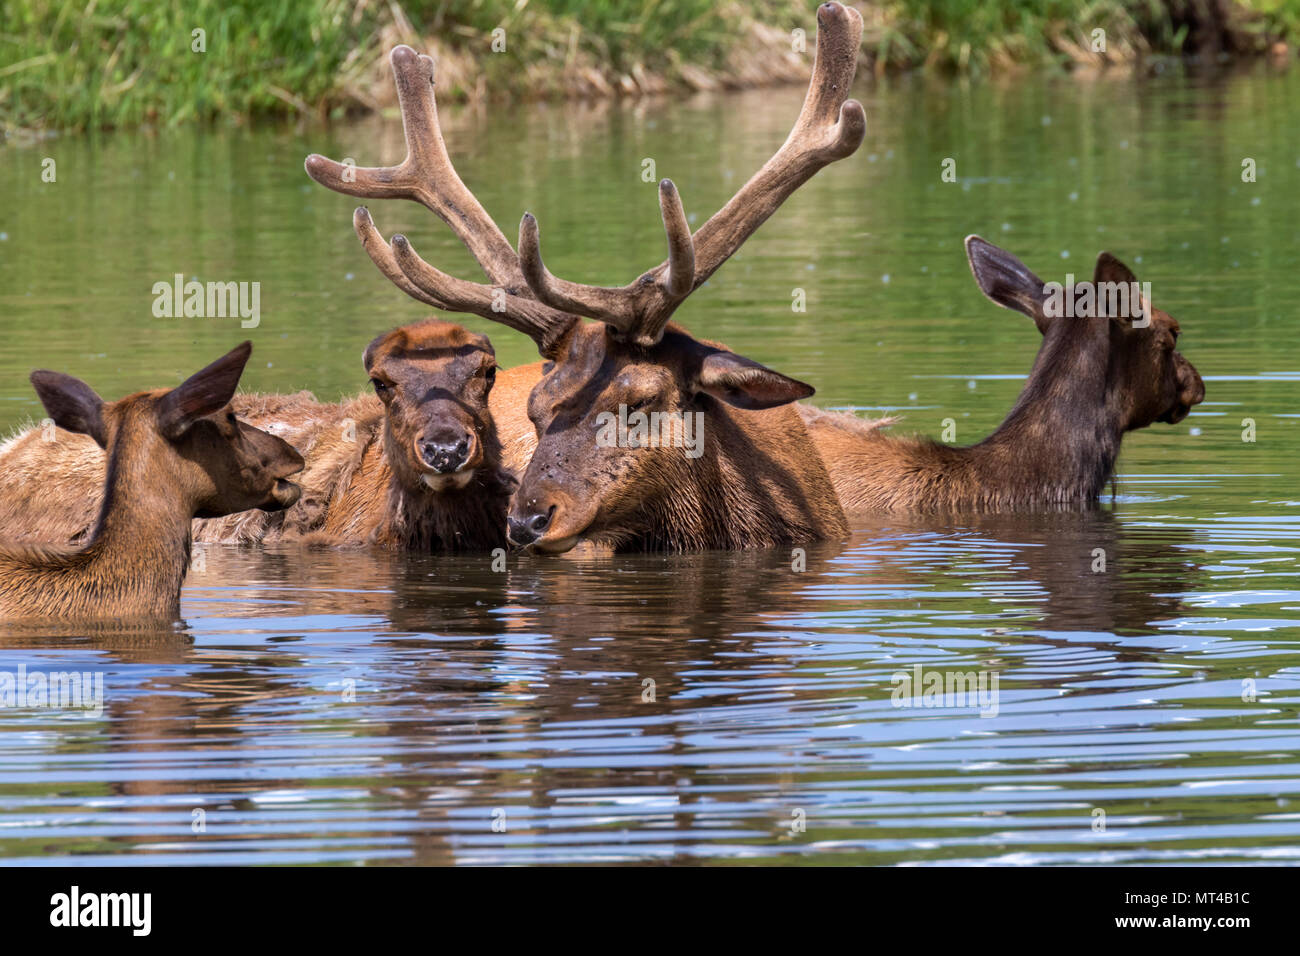 A family group of American elk (Cervus canadensis) bathing in a lake during hot summer day, Iowa, USA. - Stock Image